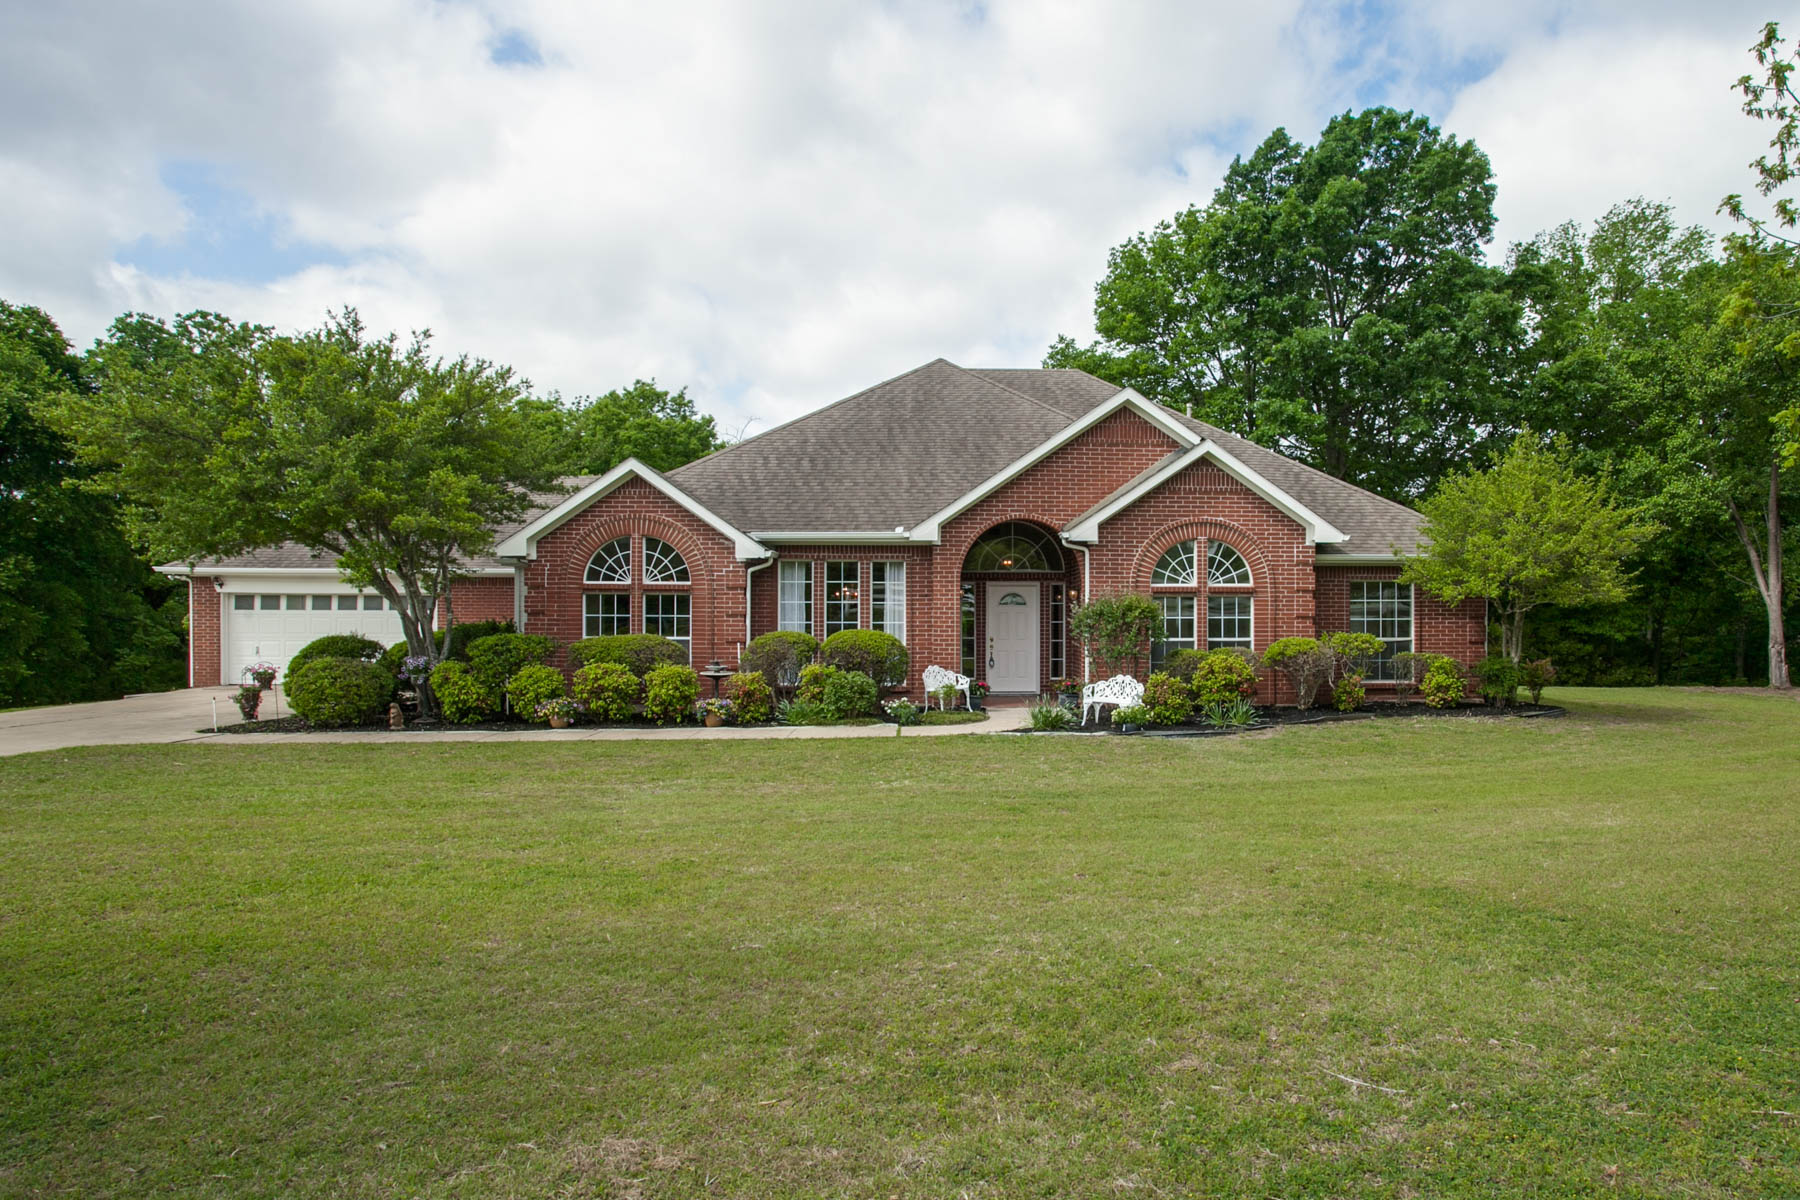 Single Family Home for Sale at 800 Gray Branch Road, Mckinney 800 Gray Branch Rd McKinney, Texas 75071 United States